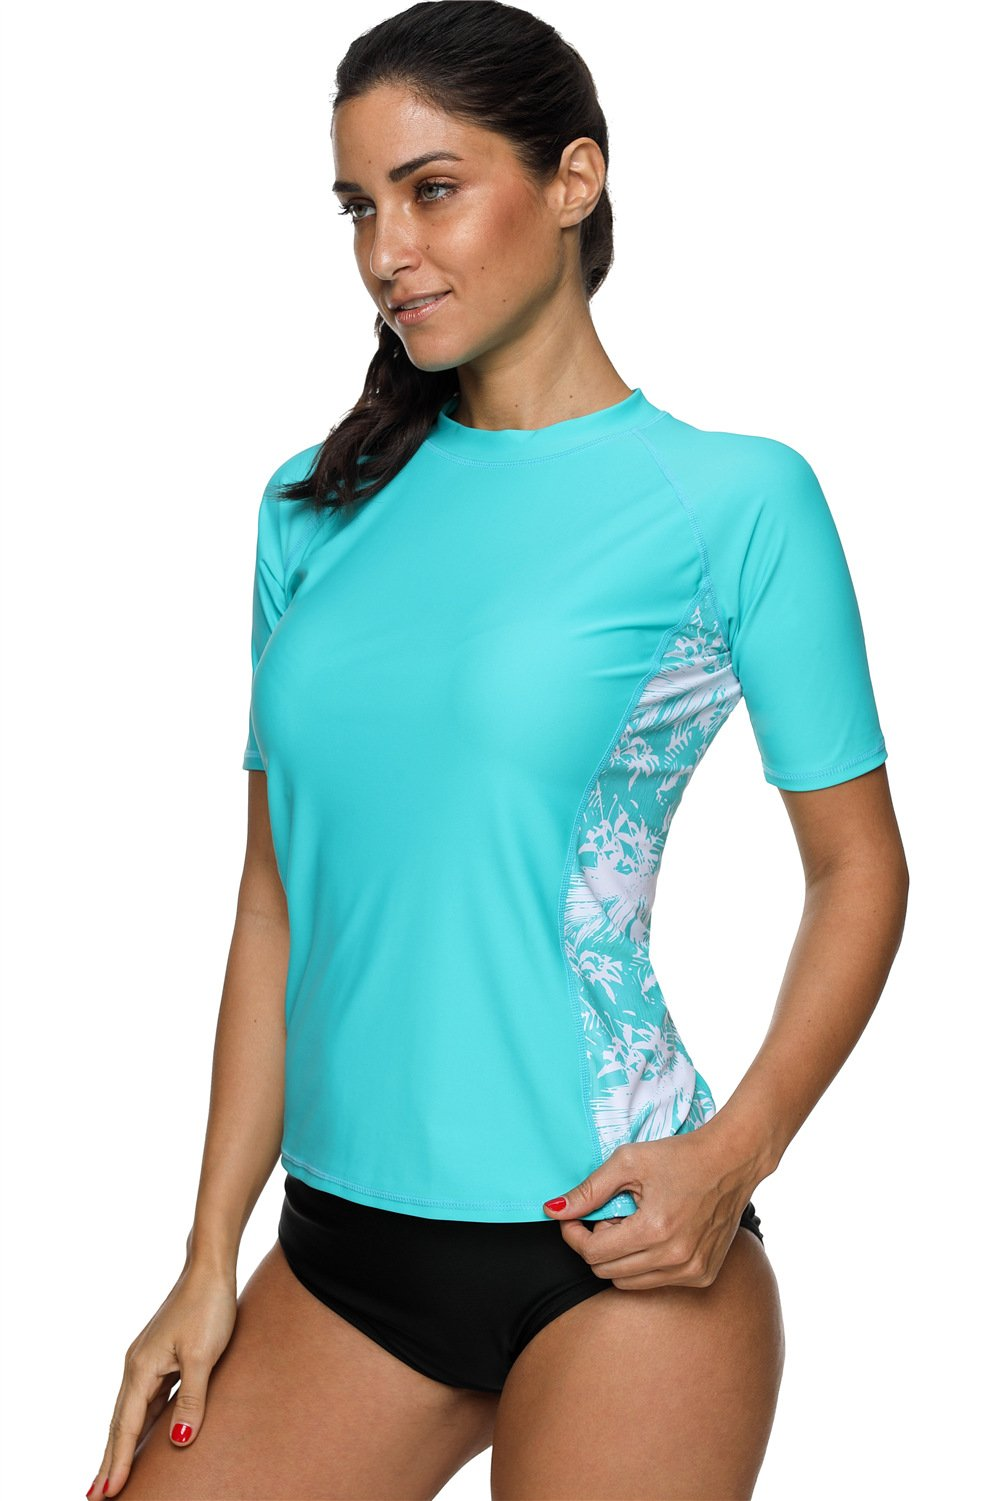 maysoul Women Sun Protection Rash Guard Floral Swim Shirt Wetsuits Aqua Medium